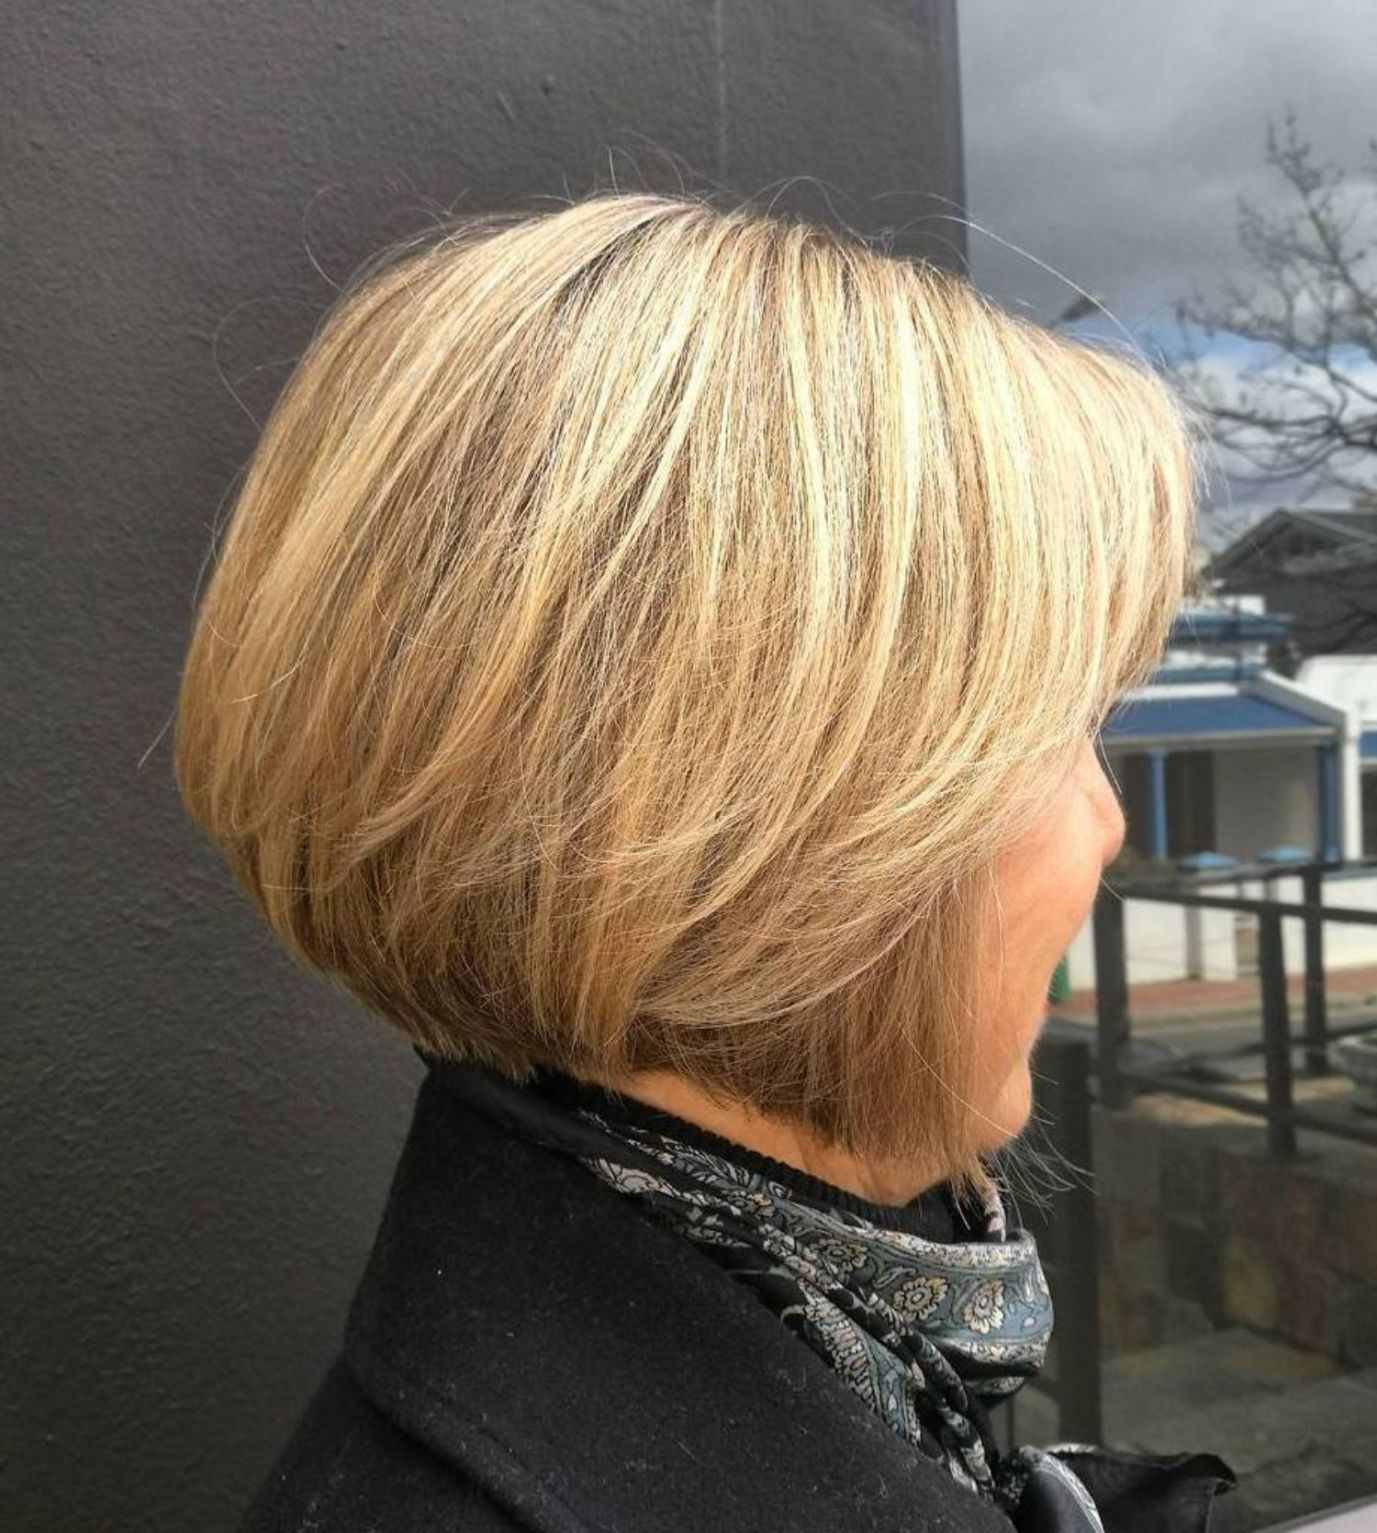 Wedding Hairstyles For Fat Faces: Pin On Bob Over 60